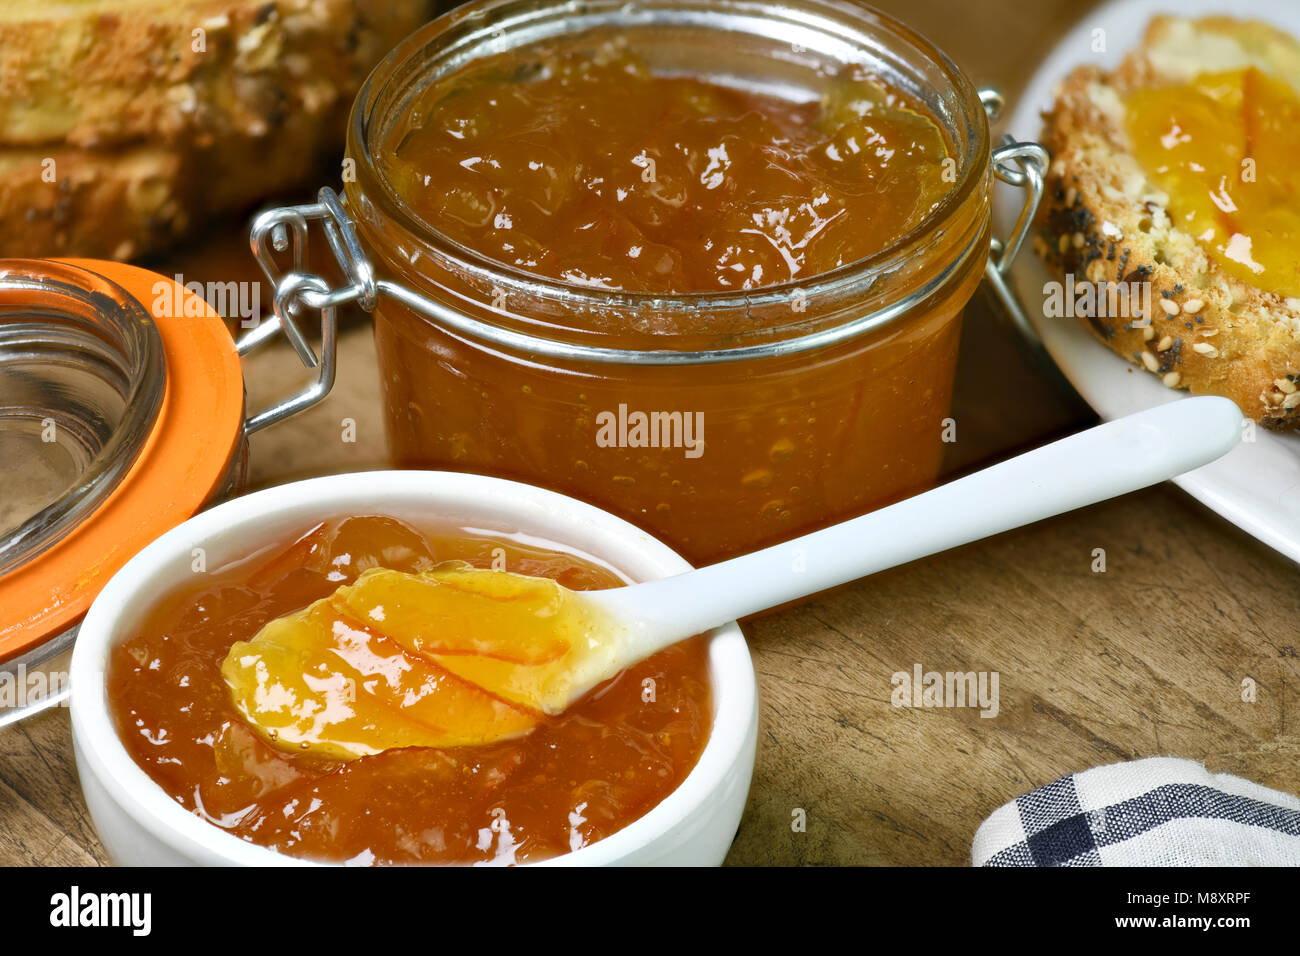 homemade organic marmalade in a small white dish with larger amount in a preserving jar laid out on a old wooden - Stock Image